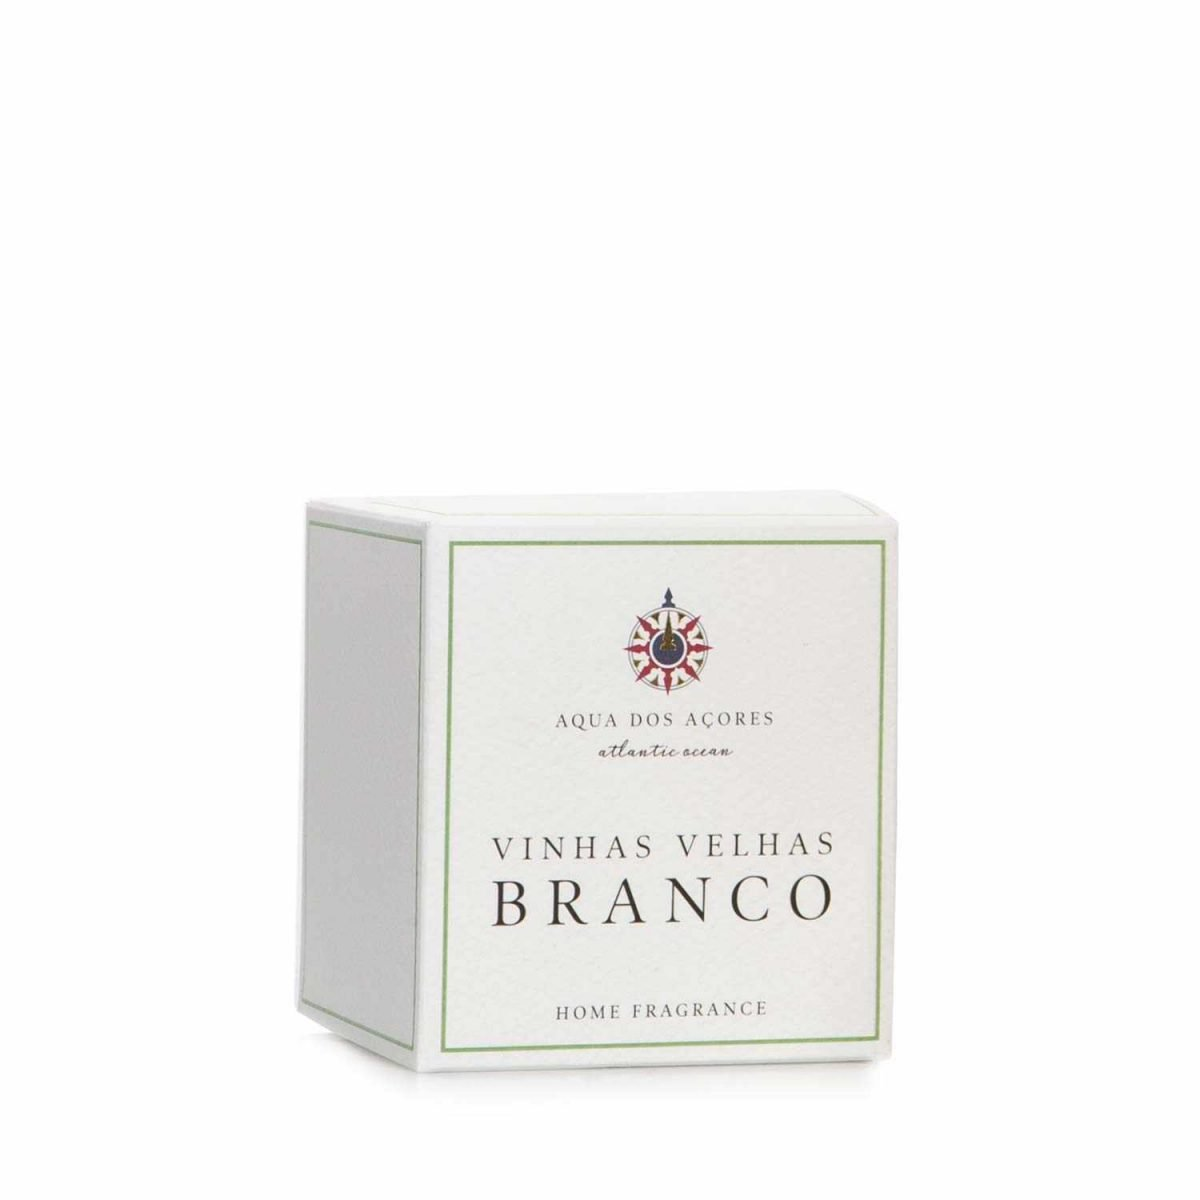 Branco Home fragrance box by Aqua dos Azores